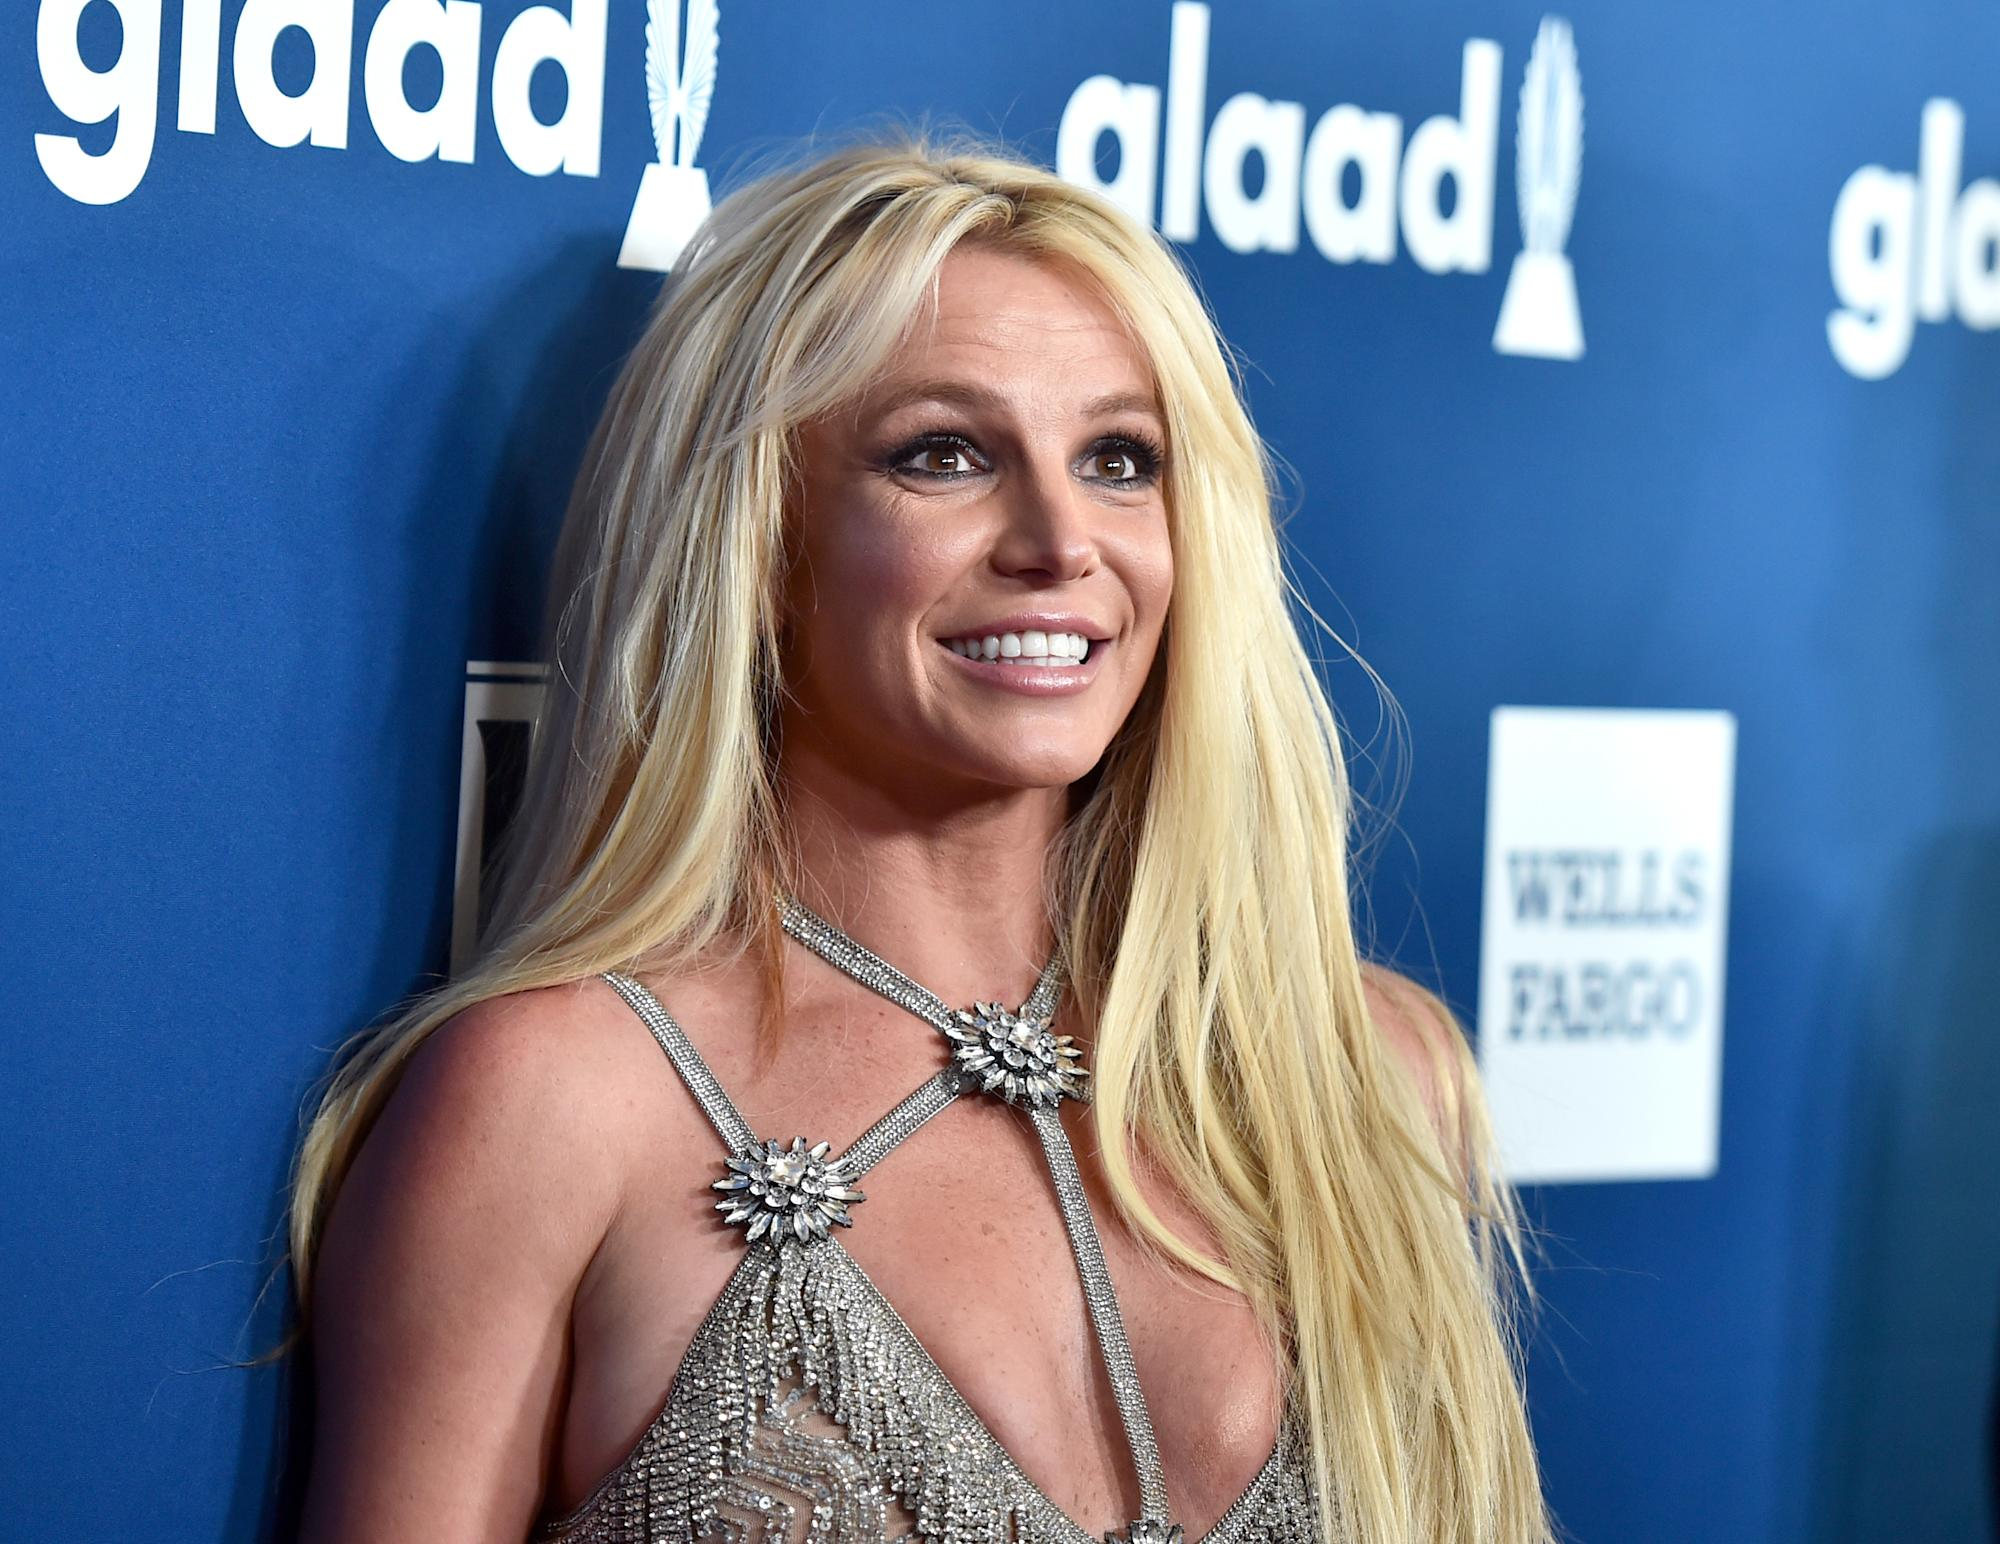 Britney Spears to address the court in conservatorship case on June 23 – Yahoo Entertainment